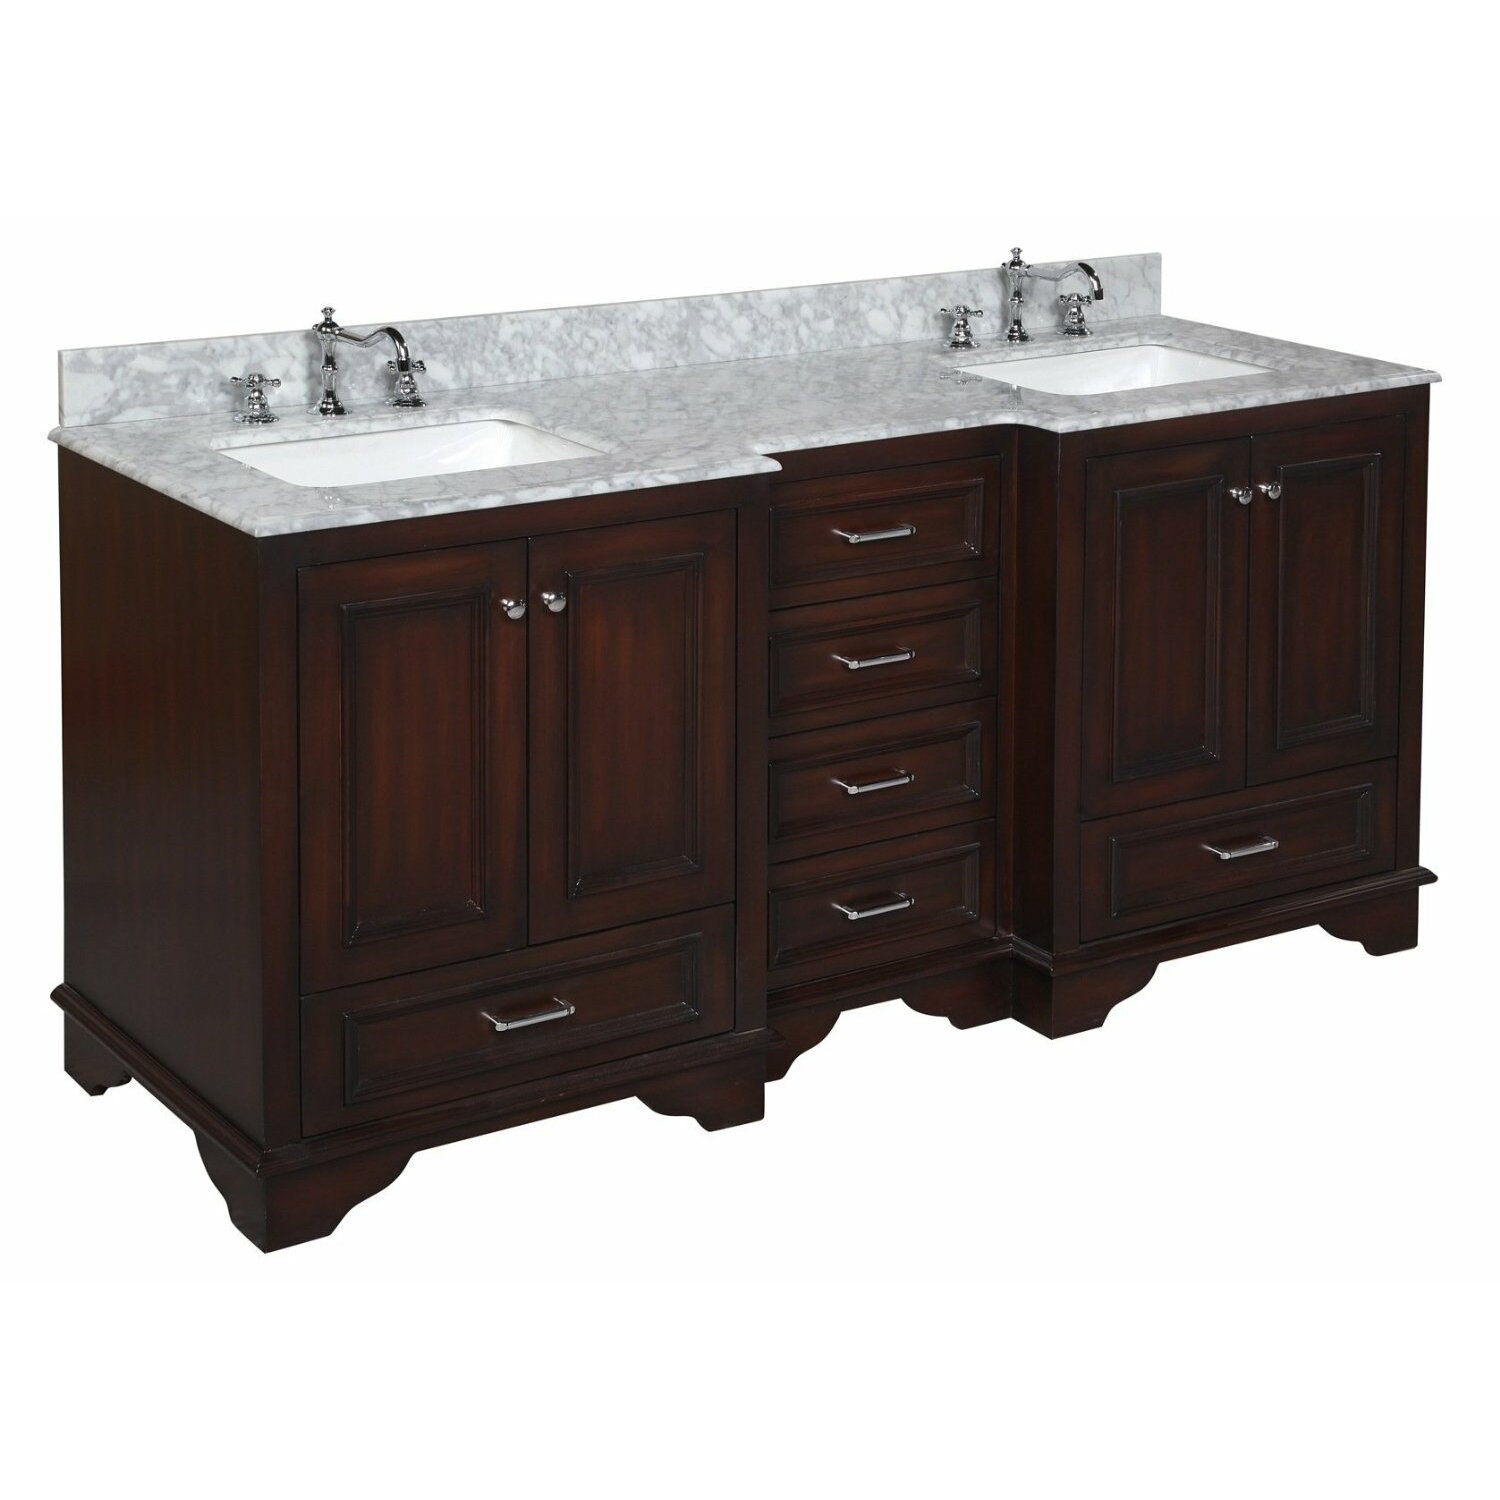 Kbc nantucket 72 double bathroom vanity set reviews for Bath and vanity set